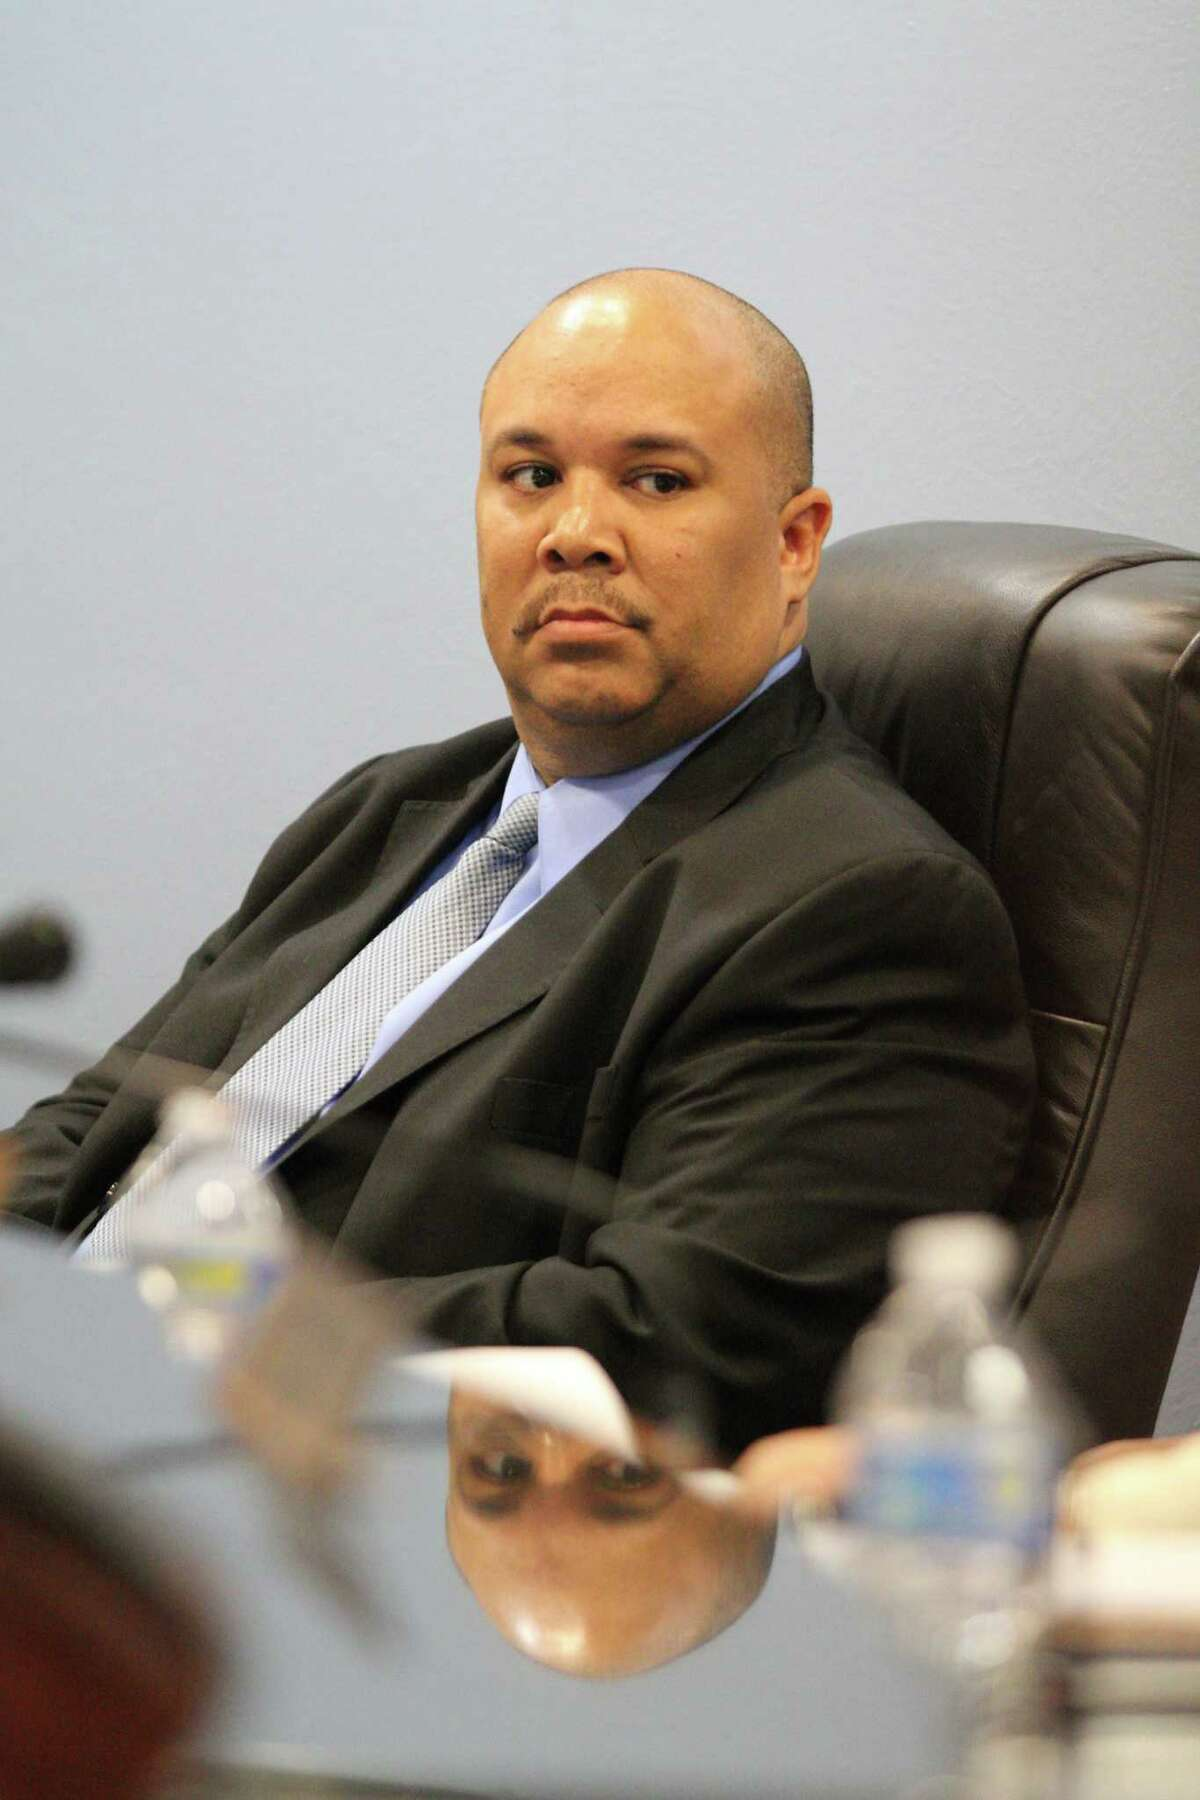 Guy Rankin IV, former housing CEO, is accused of fraud by the Harris County Housing Authority